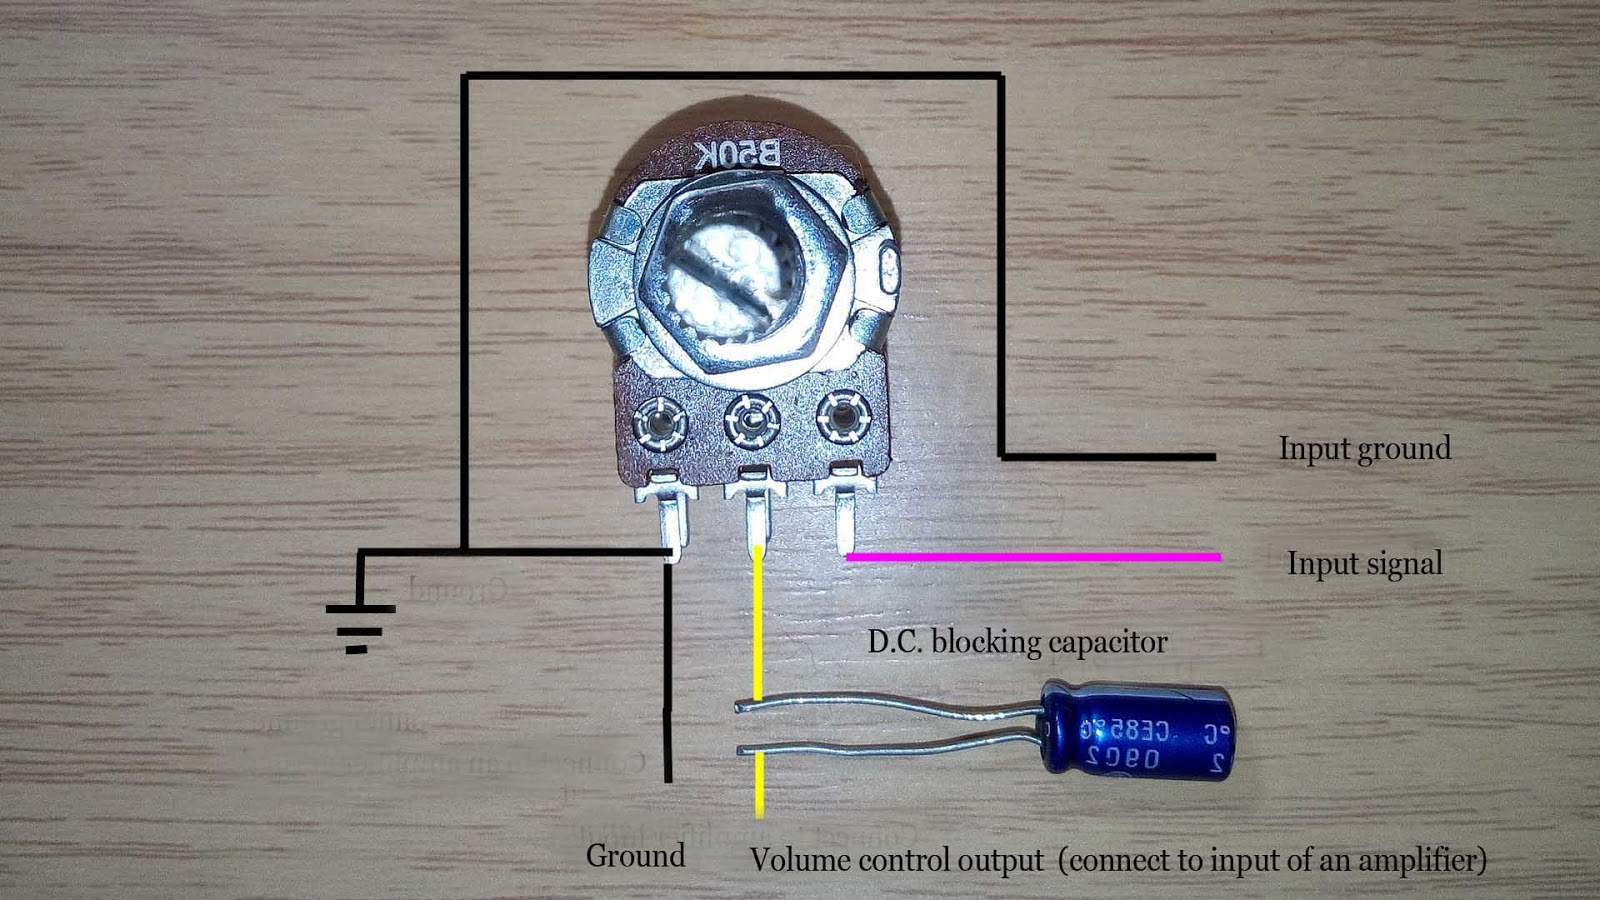 how to connect volume control to an amplifier rh easyandworkproject xyz 10K Potentiometer Wiring Potentiometer Connection